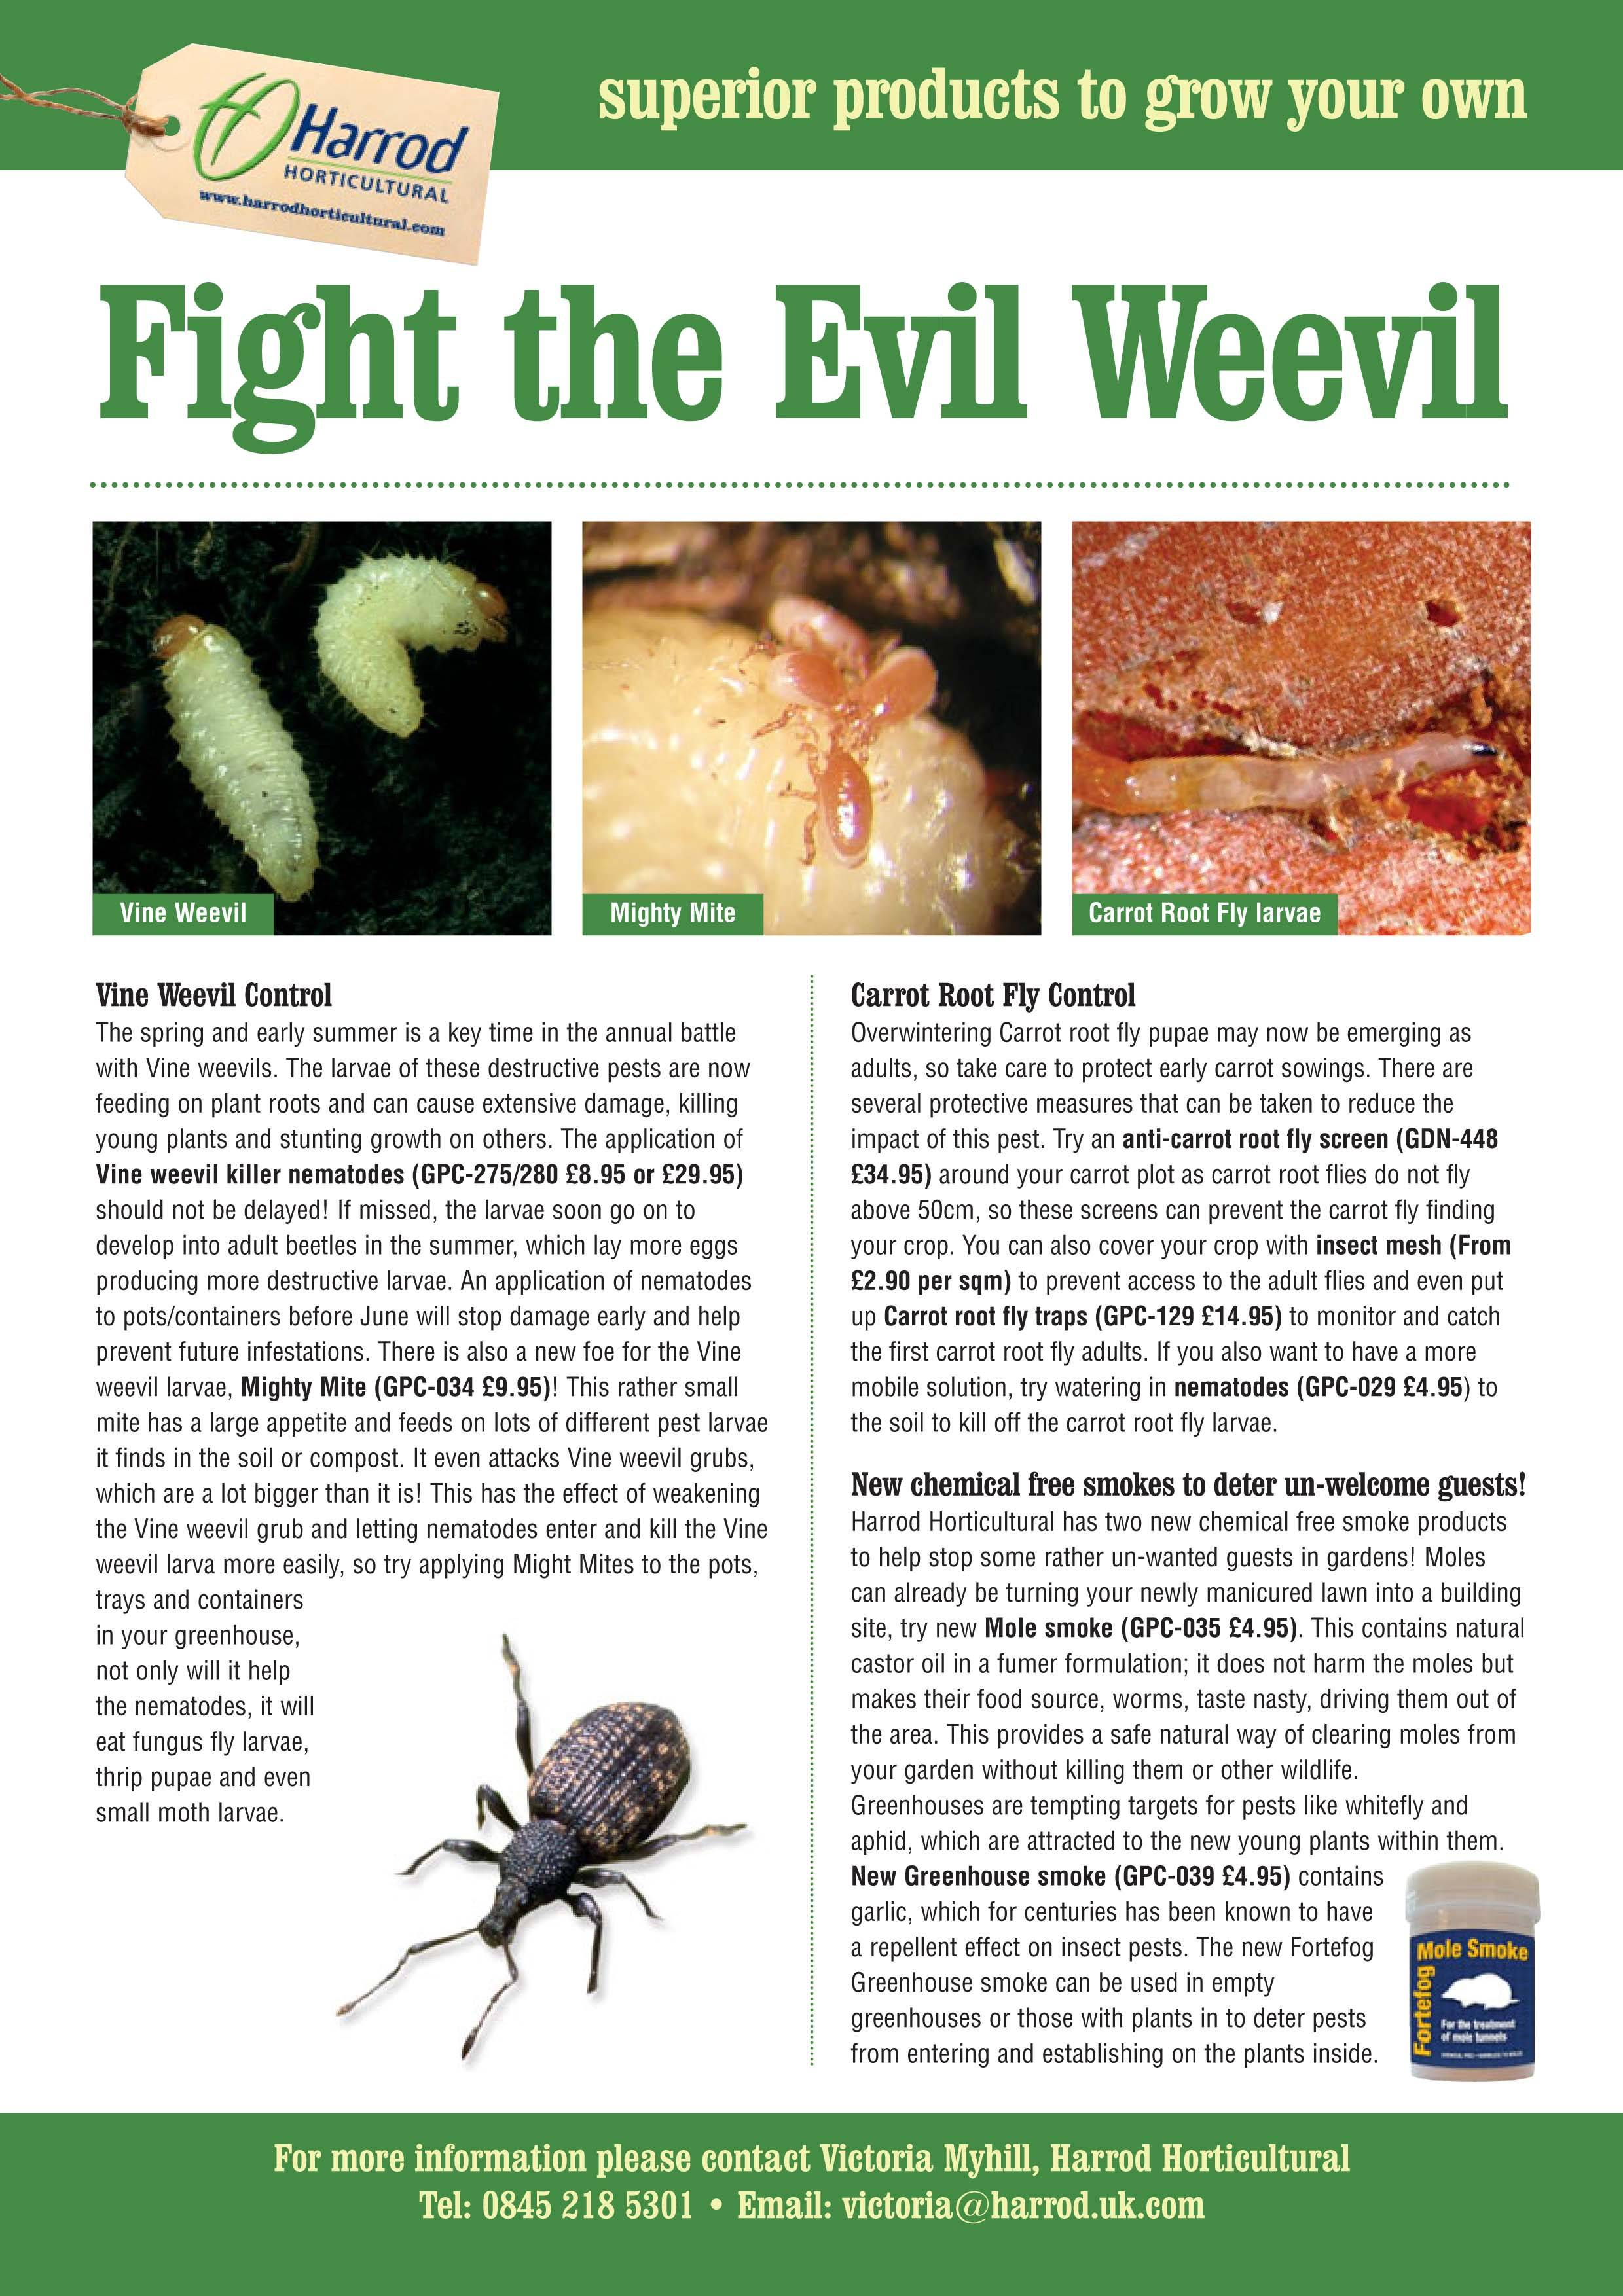 Vine Weevil Press Release